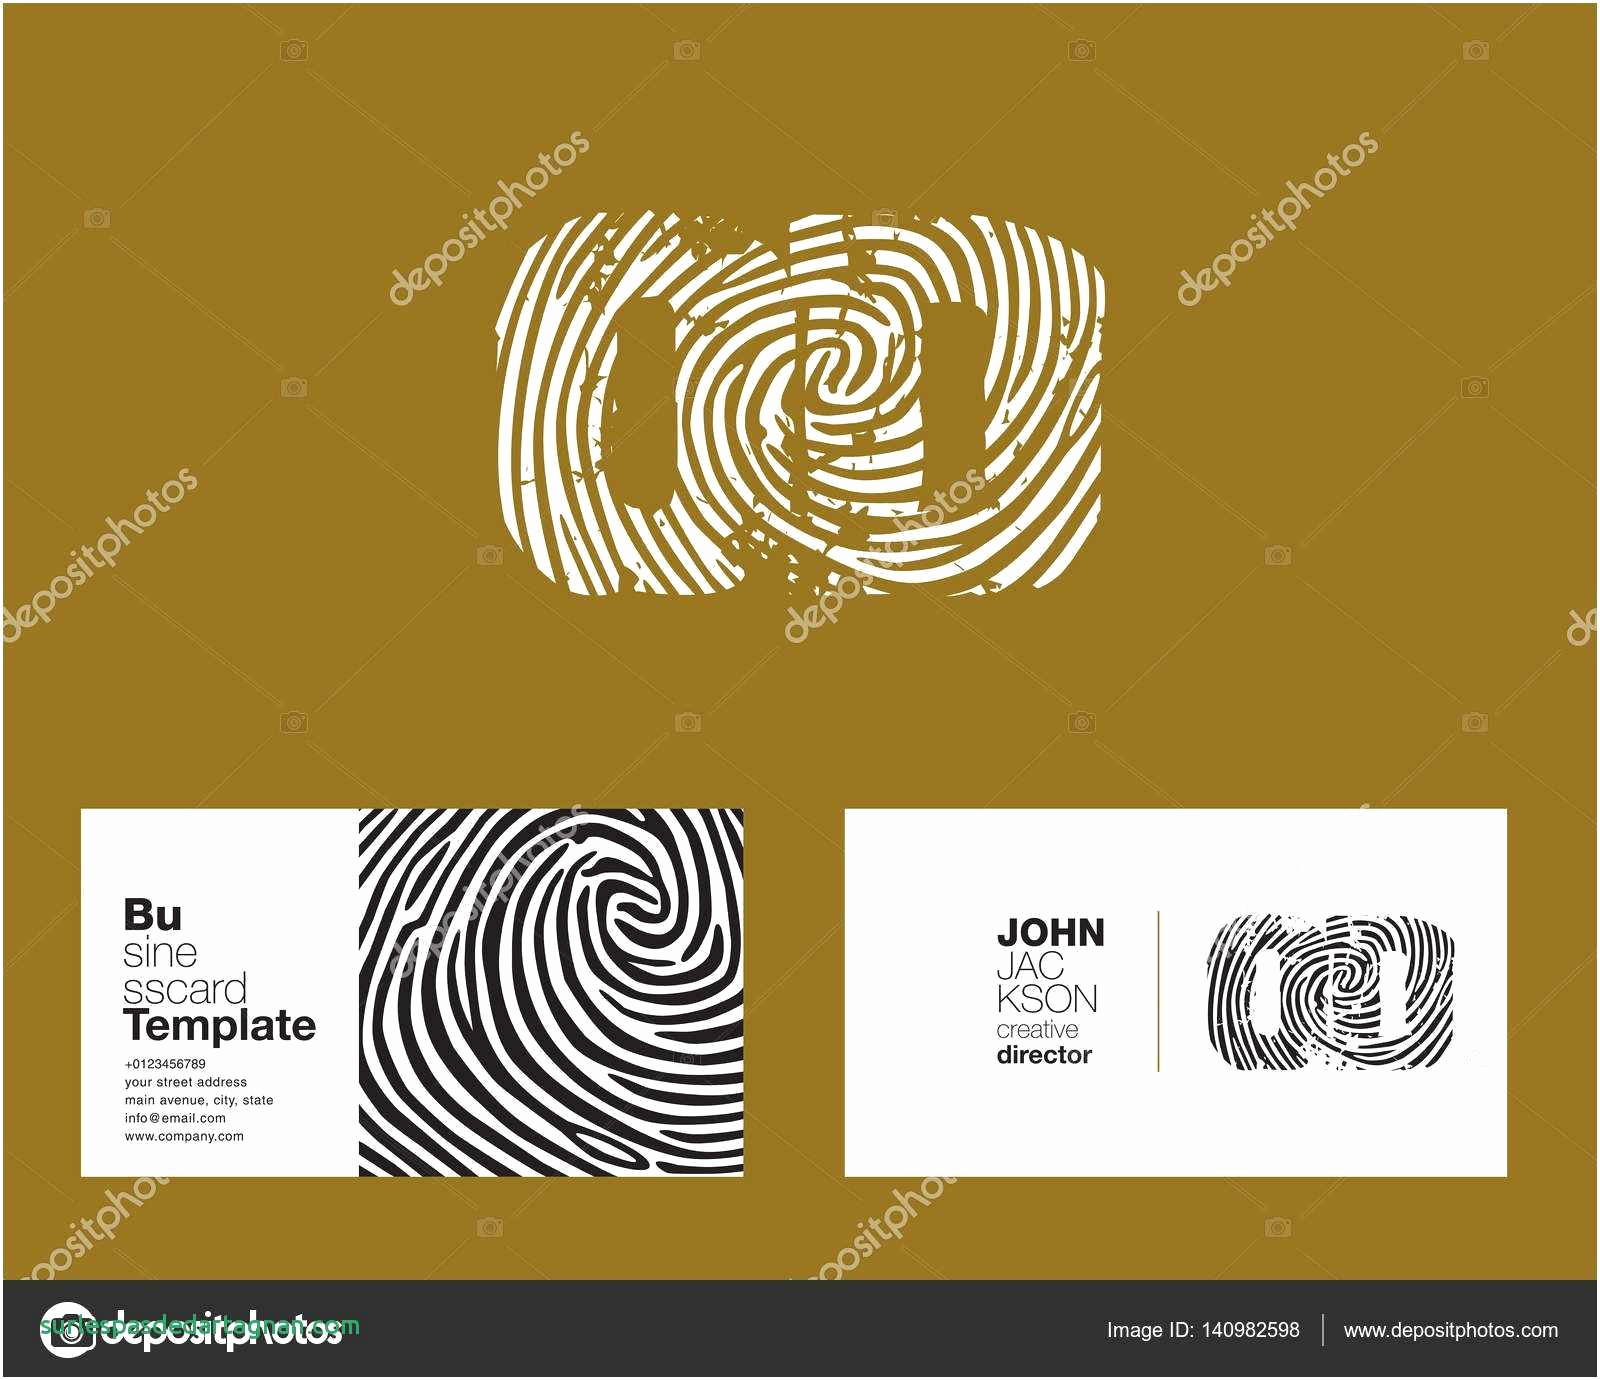 Business Card Template Illustrator Free Beautiful 34 Beautiful Business Card Template Illustrator